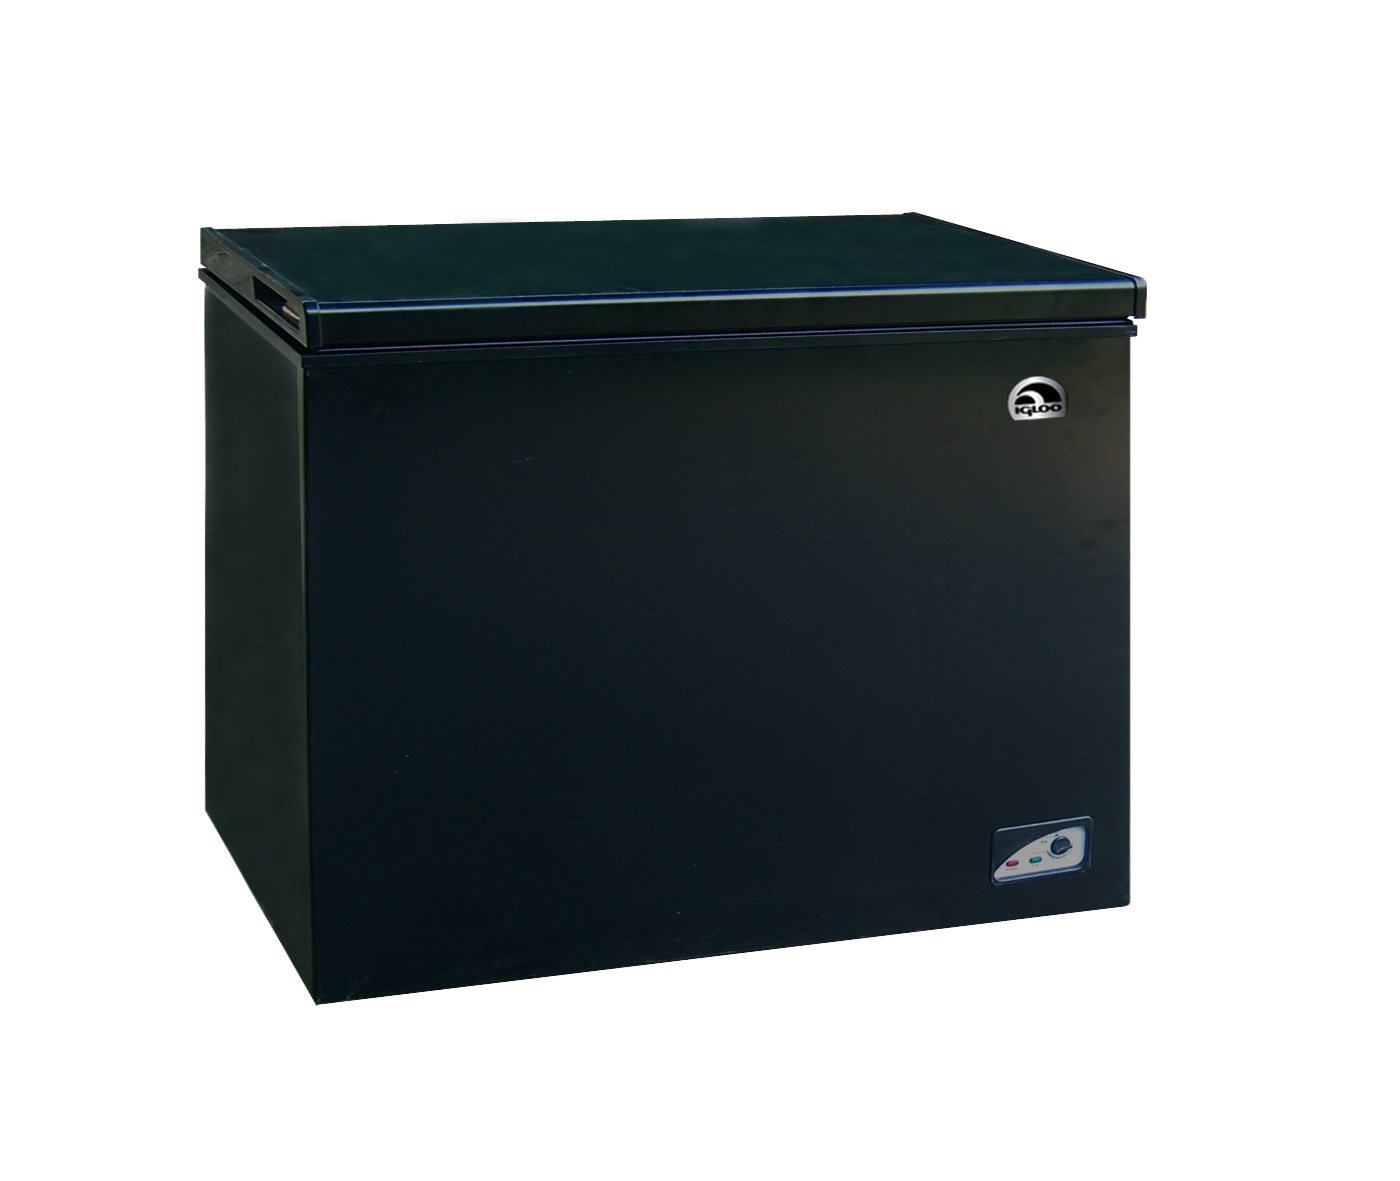 7.1 Cubic Foot Chest Freezer